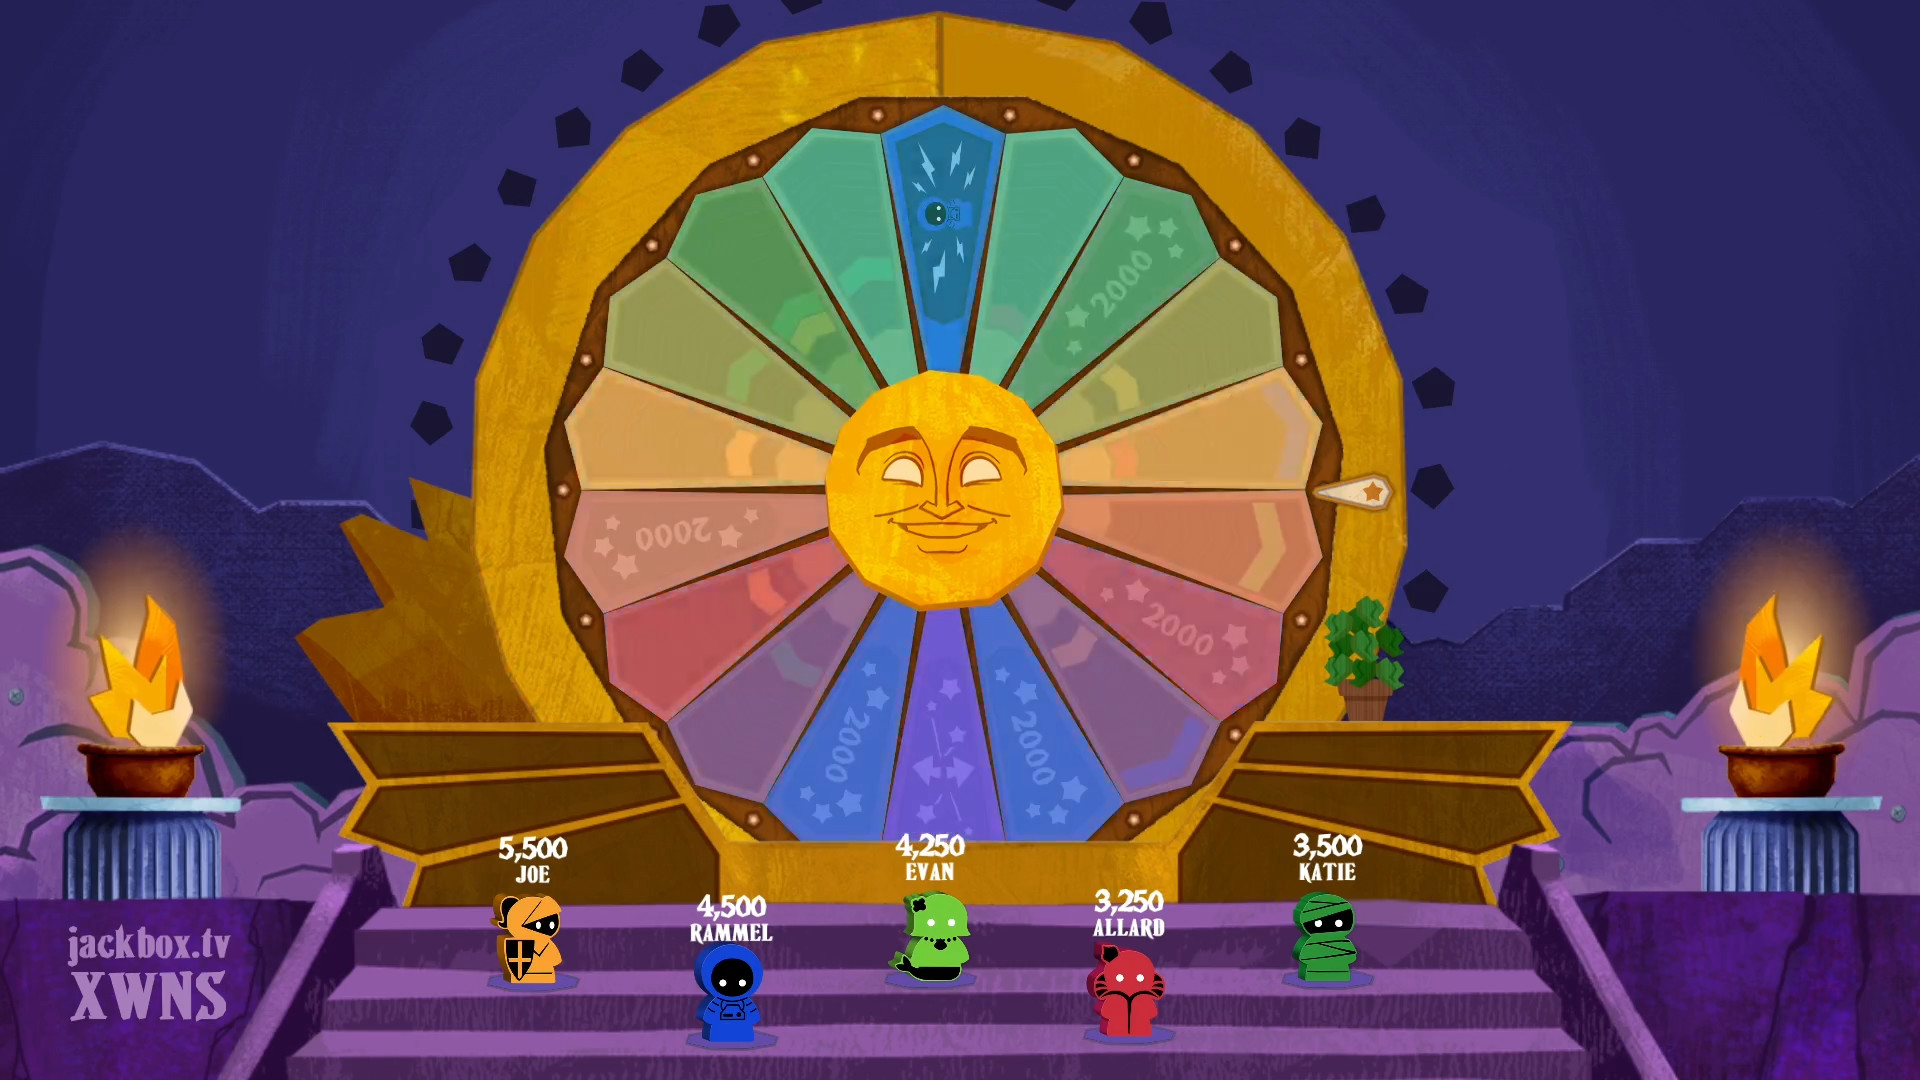 Jackbox Party Pack 8 - The colorful Wheel of Enormous Proportions is ready for a spin